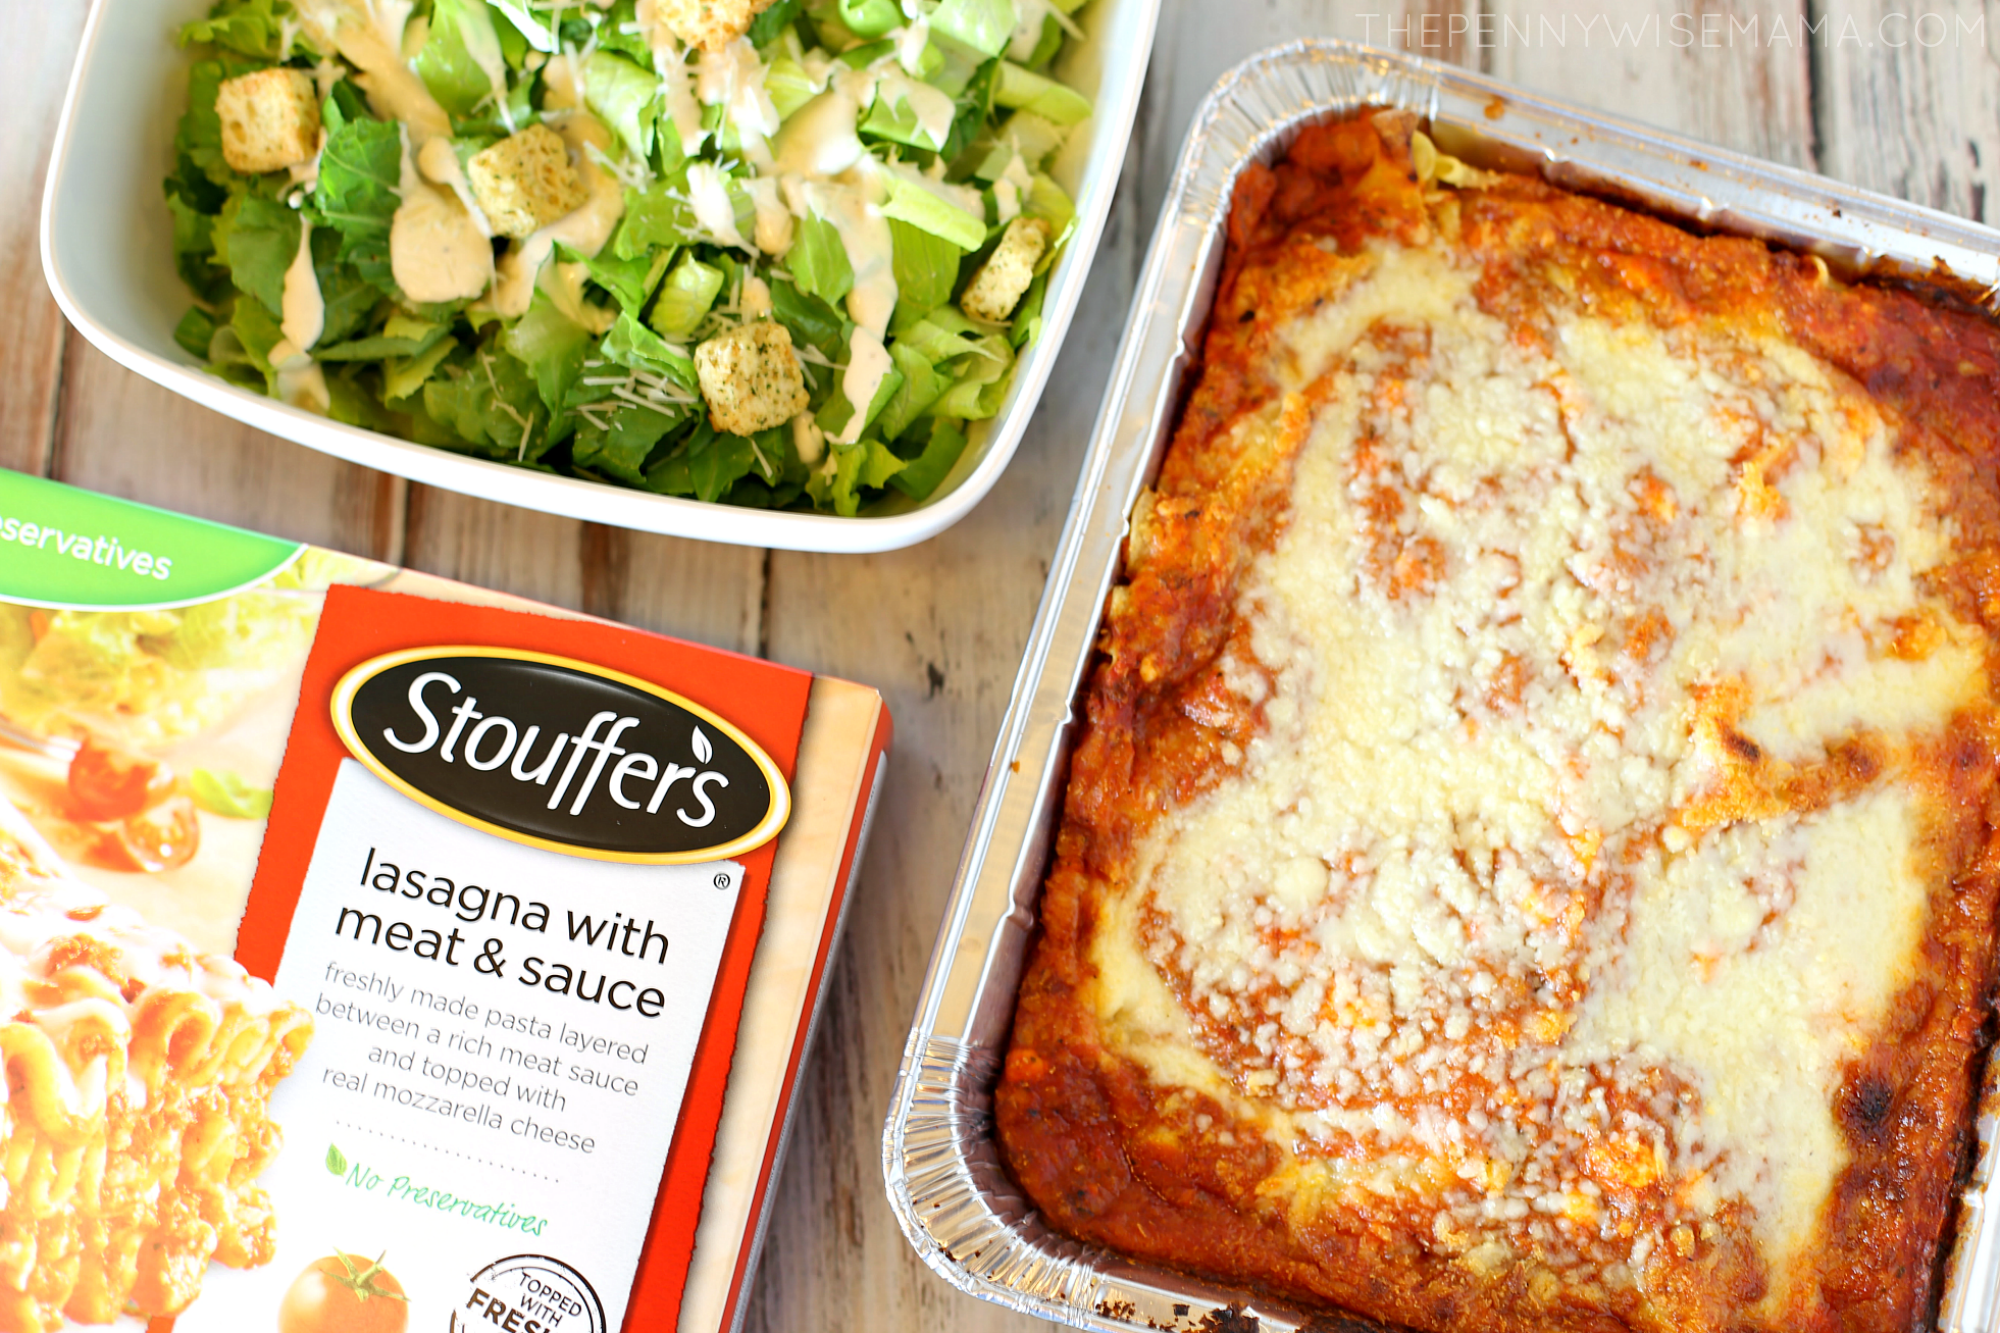 Balance Your Plate with Stouffer's Lasagna with Meat & Sauce